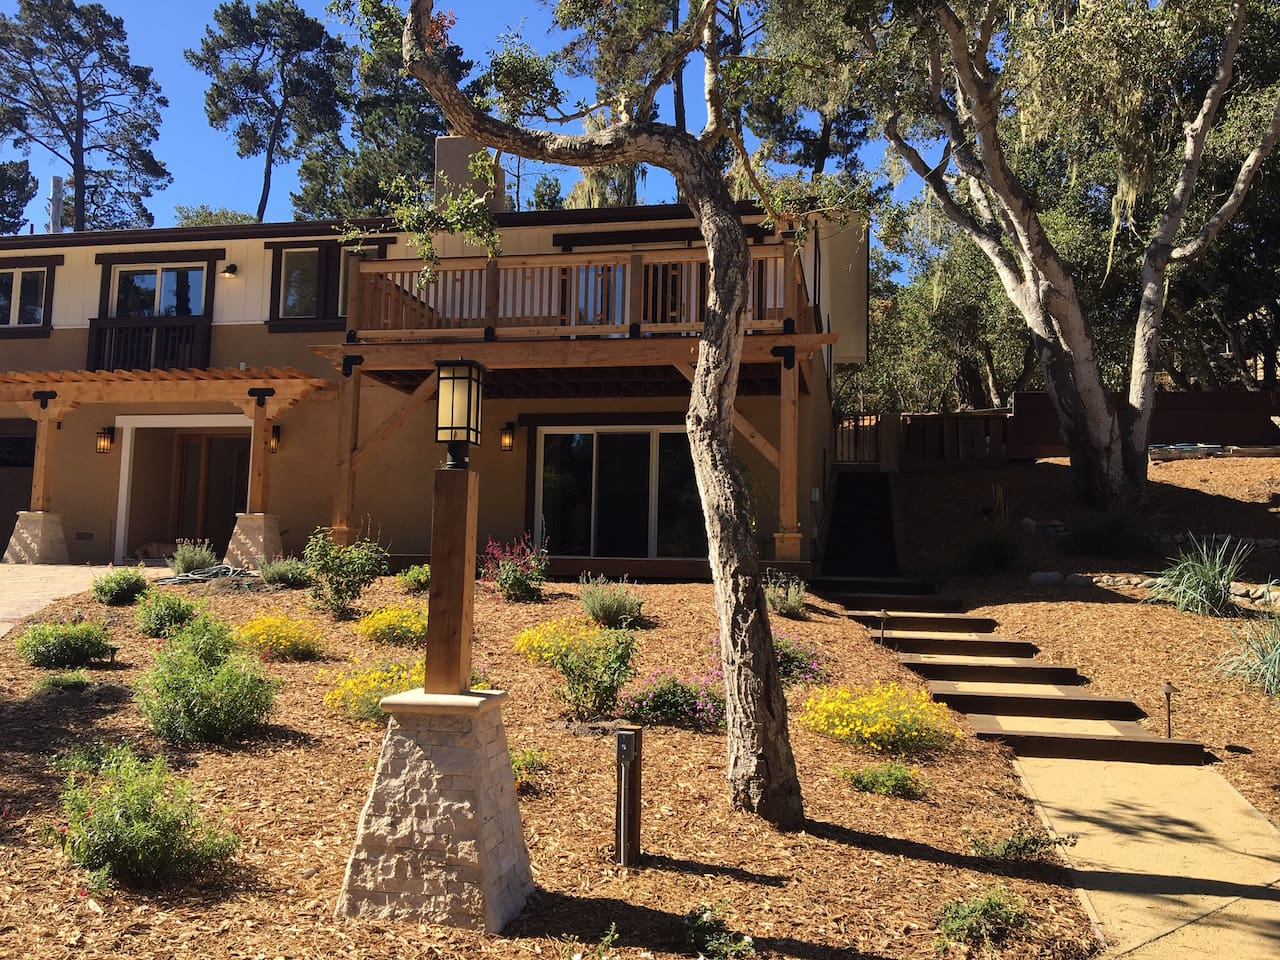 The path leads up to the apartment, enter through the sliding glass doors.